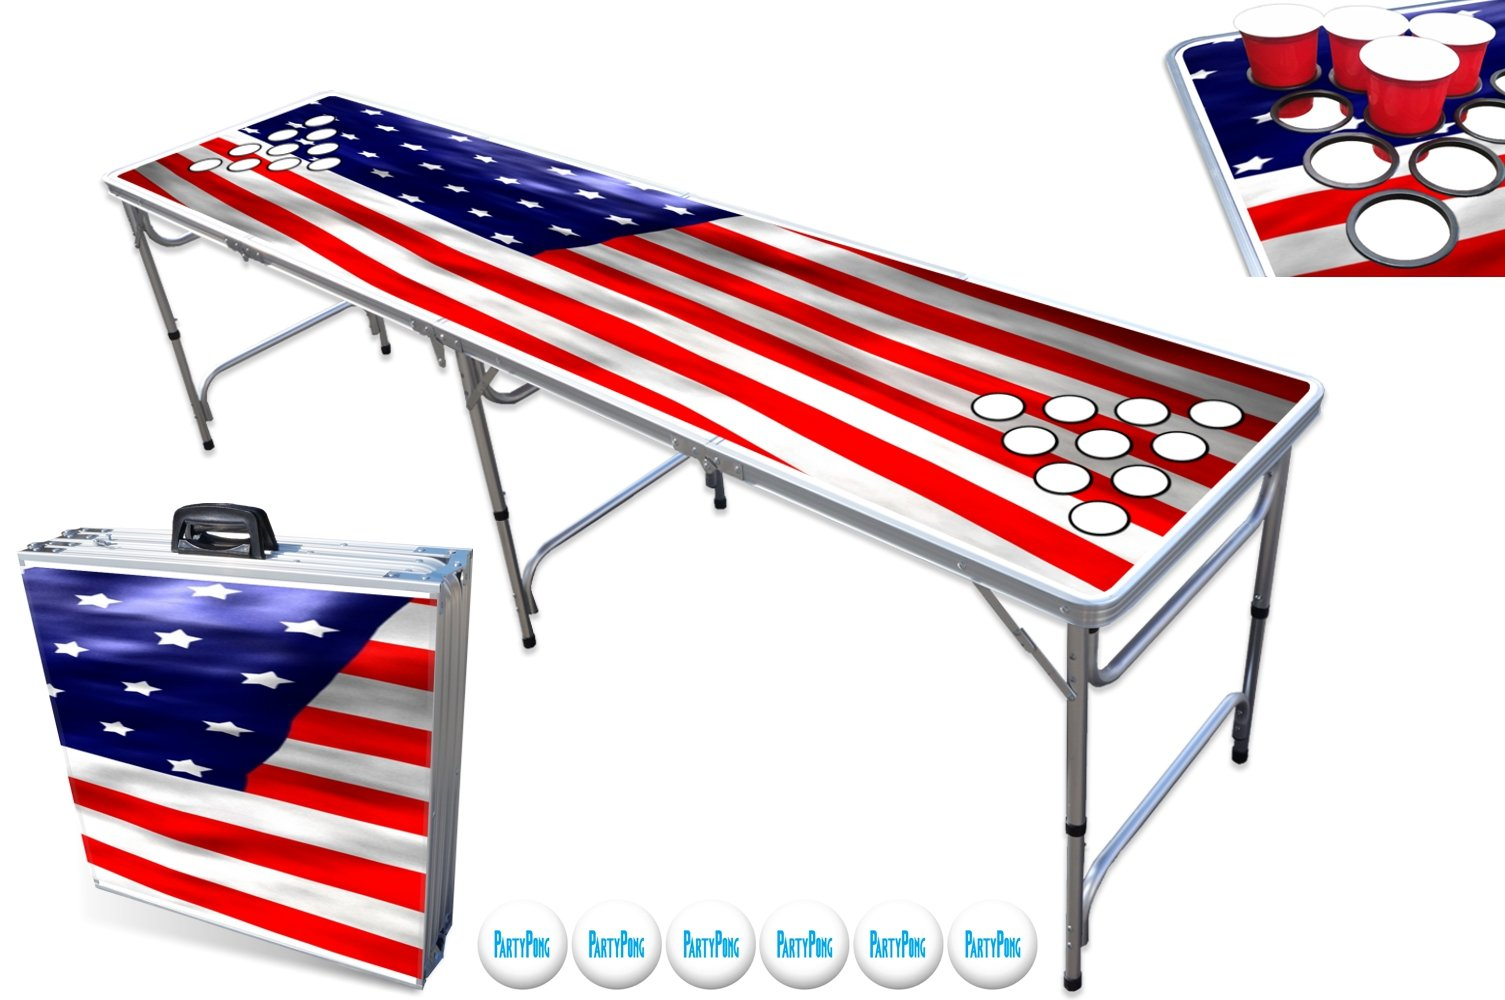 PartyPongTables.com 8-Foot Beer Pong Table with Cup Holes - USA Edition by PartyPongTables